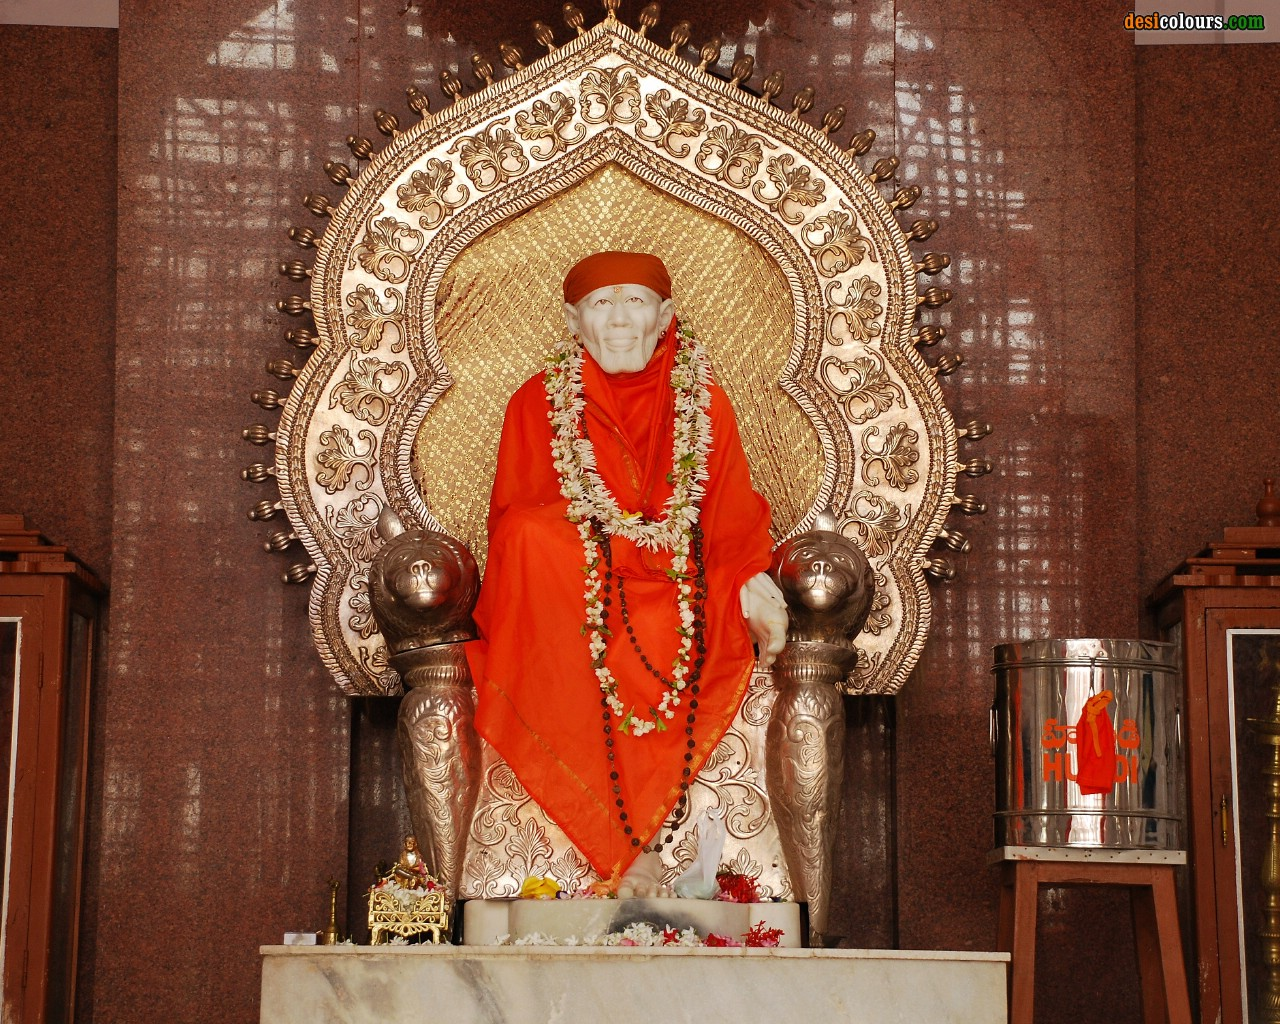 Miracle In Shirdi 5 1 2012 Shirdi Sai Babas Image Appears On Wall